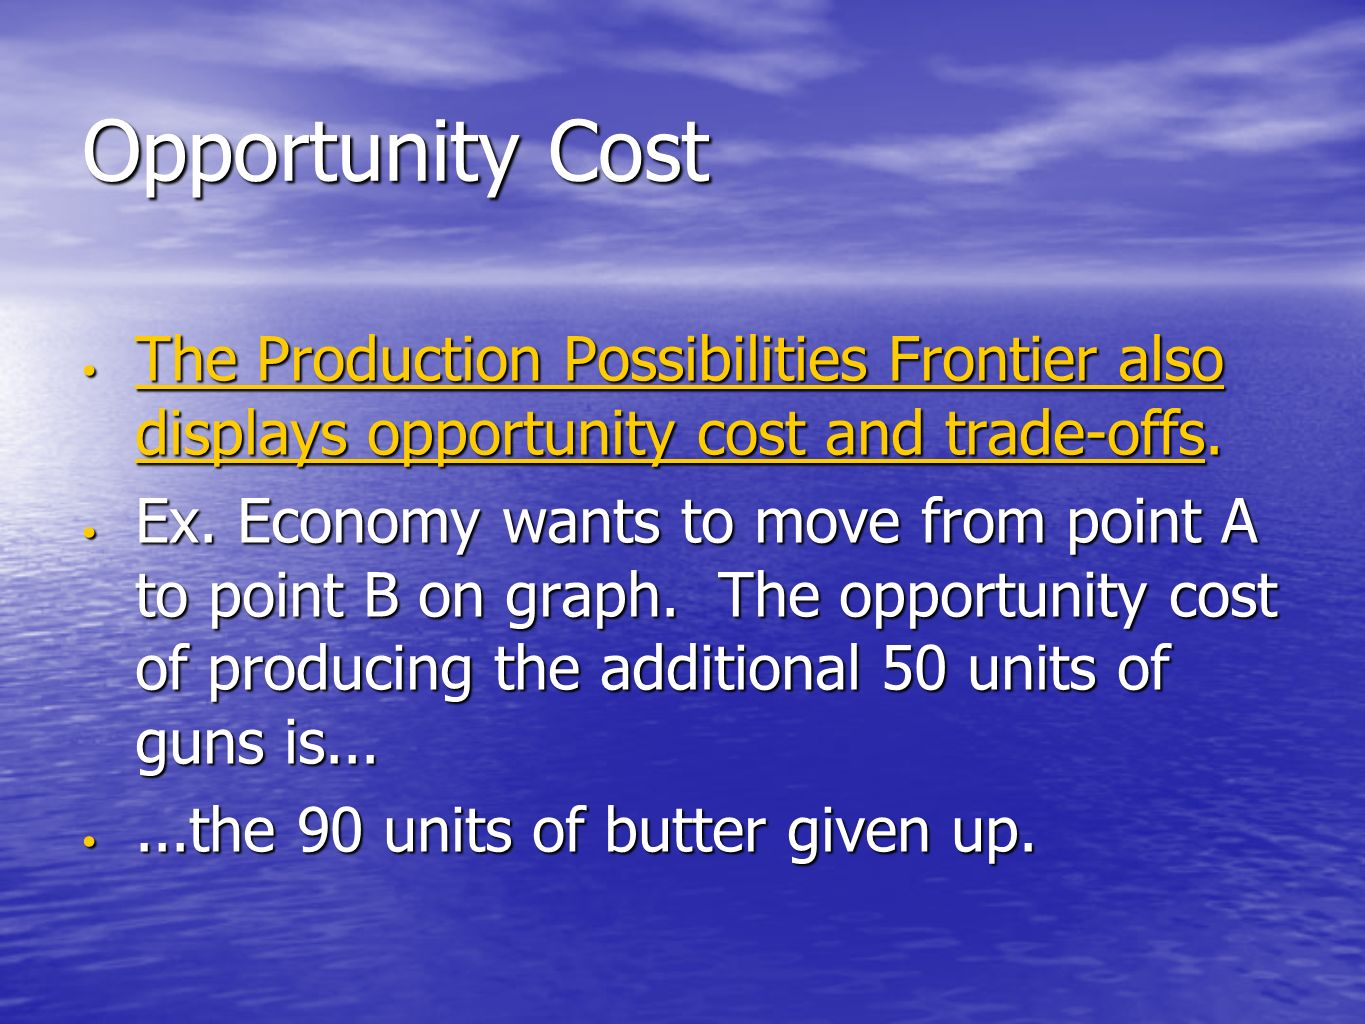 Opportunity Cost The Production Possibilities Frontier also displays opportunity cost and trade-offs. The Production Possibilities Frontier also displ